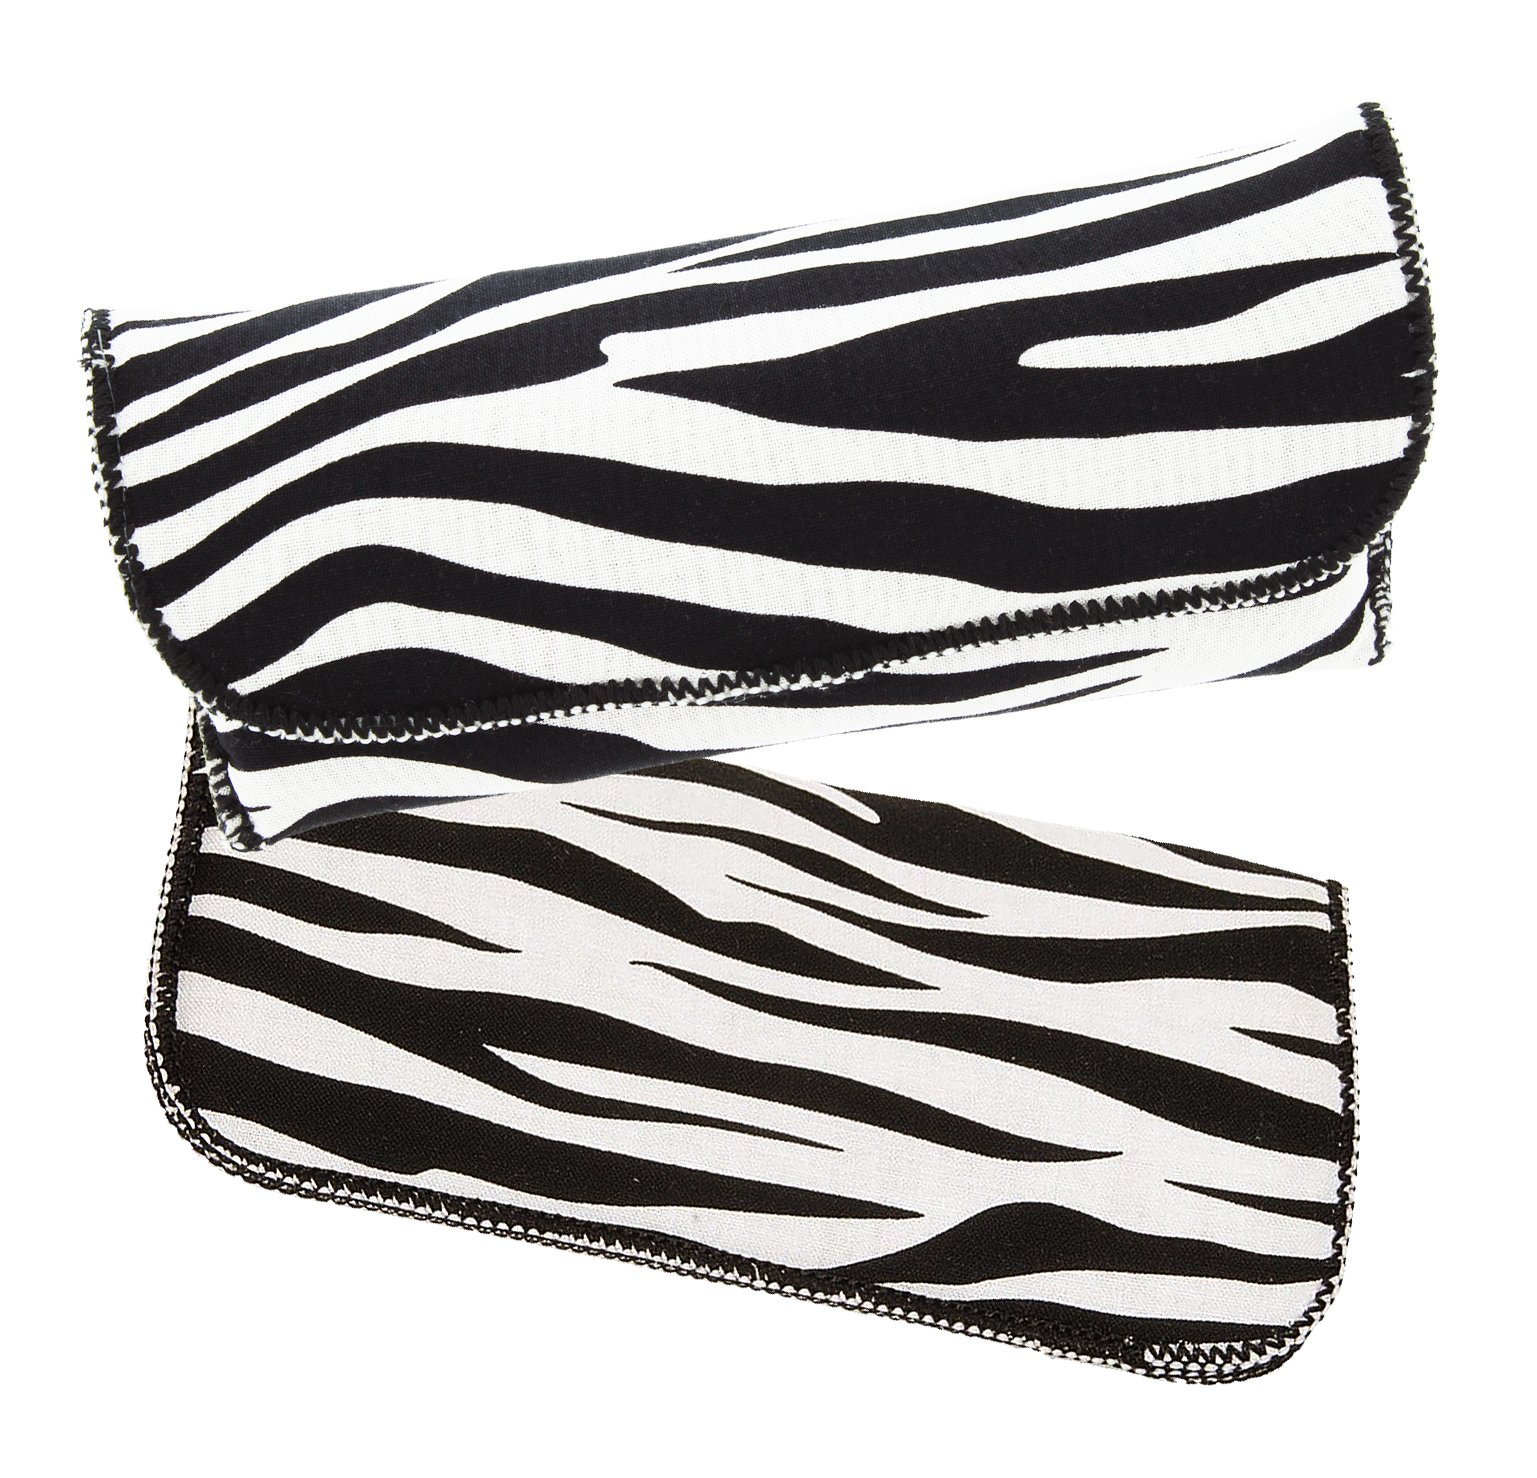 Women's Fashion Eyewear Case Combo Pack For Small To Large Glasses, Zebra Print